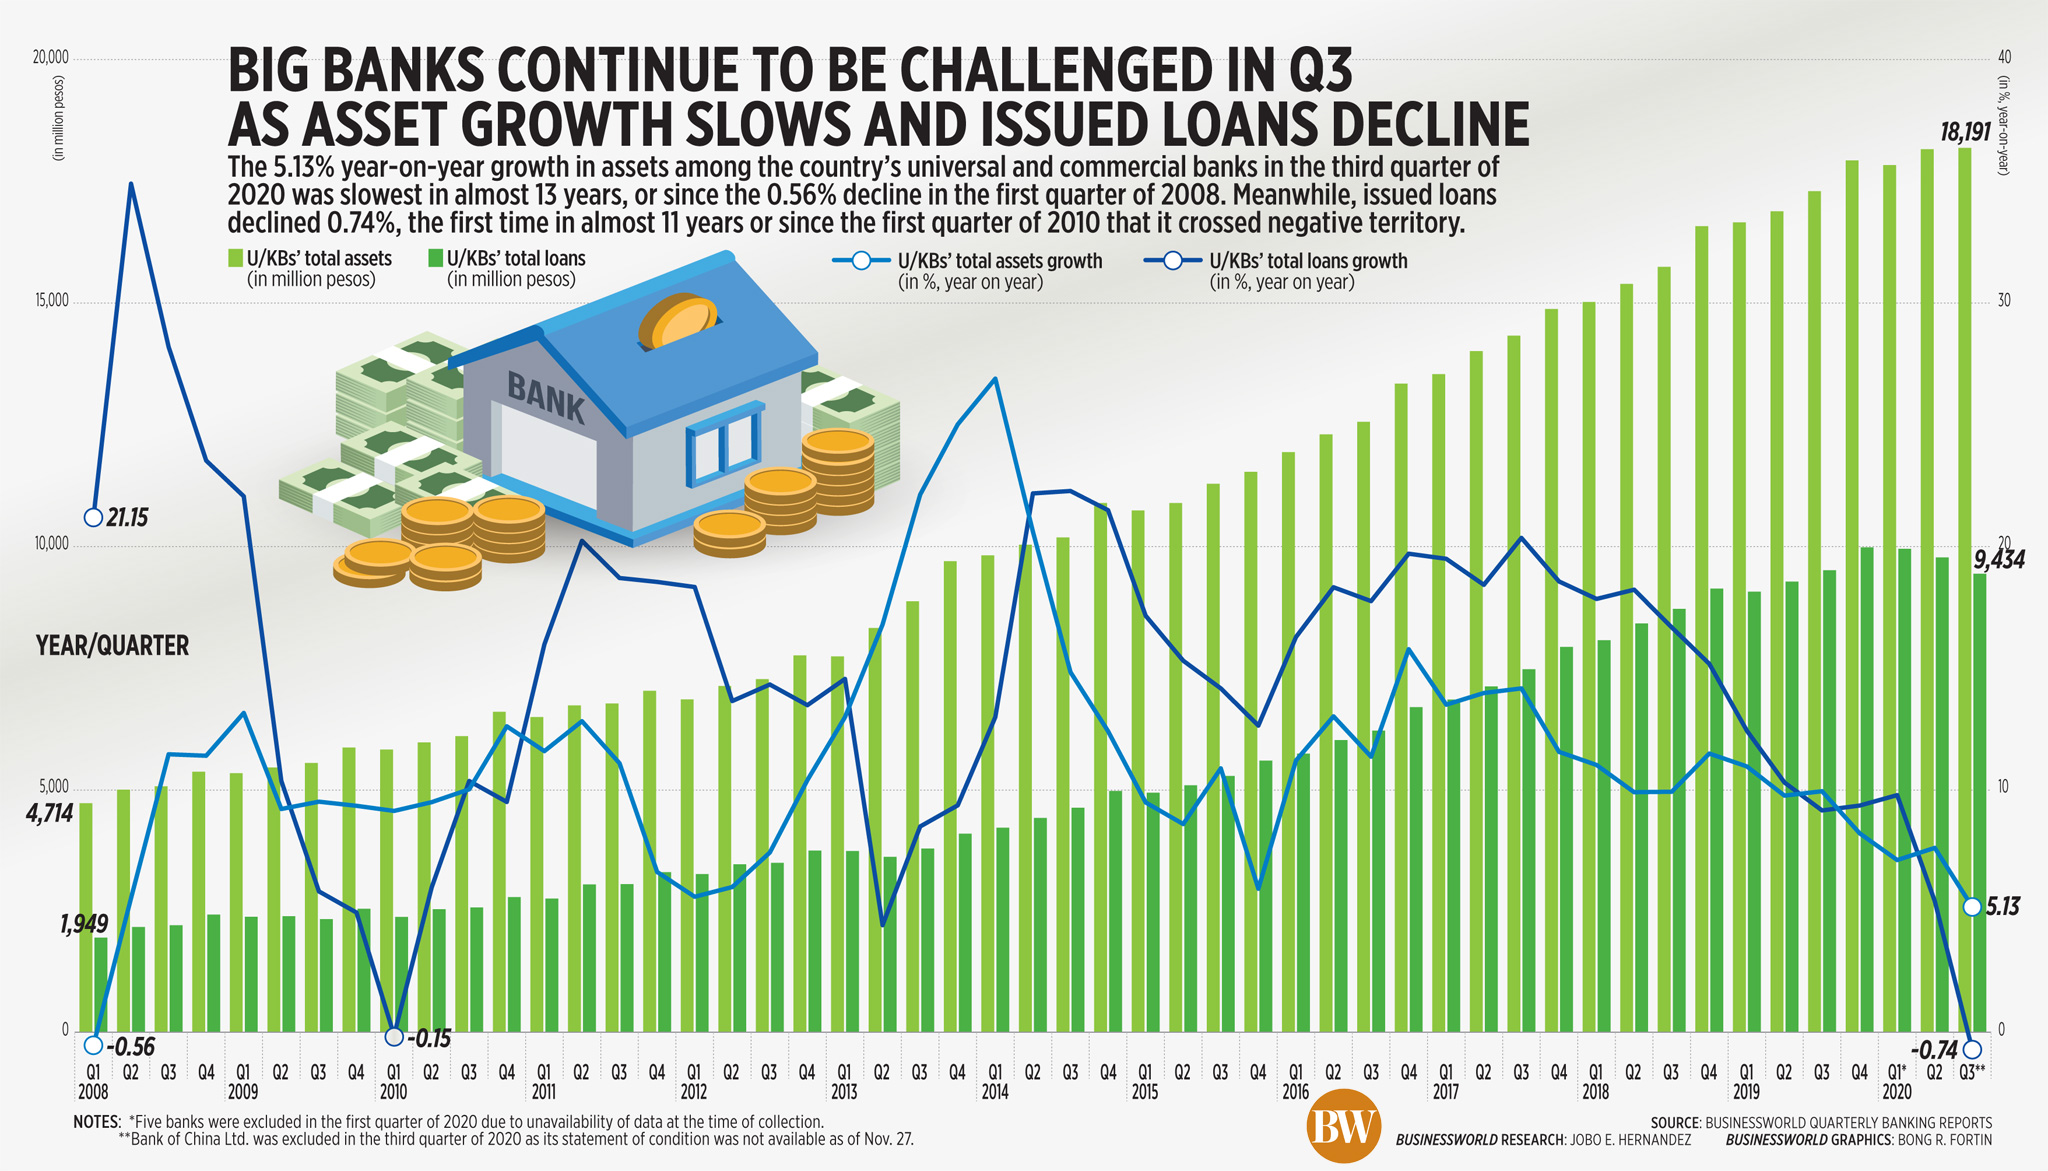 Big banks continue to be challenged in Q3 as asset growth slows and issued loans decline